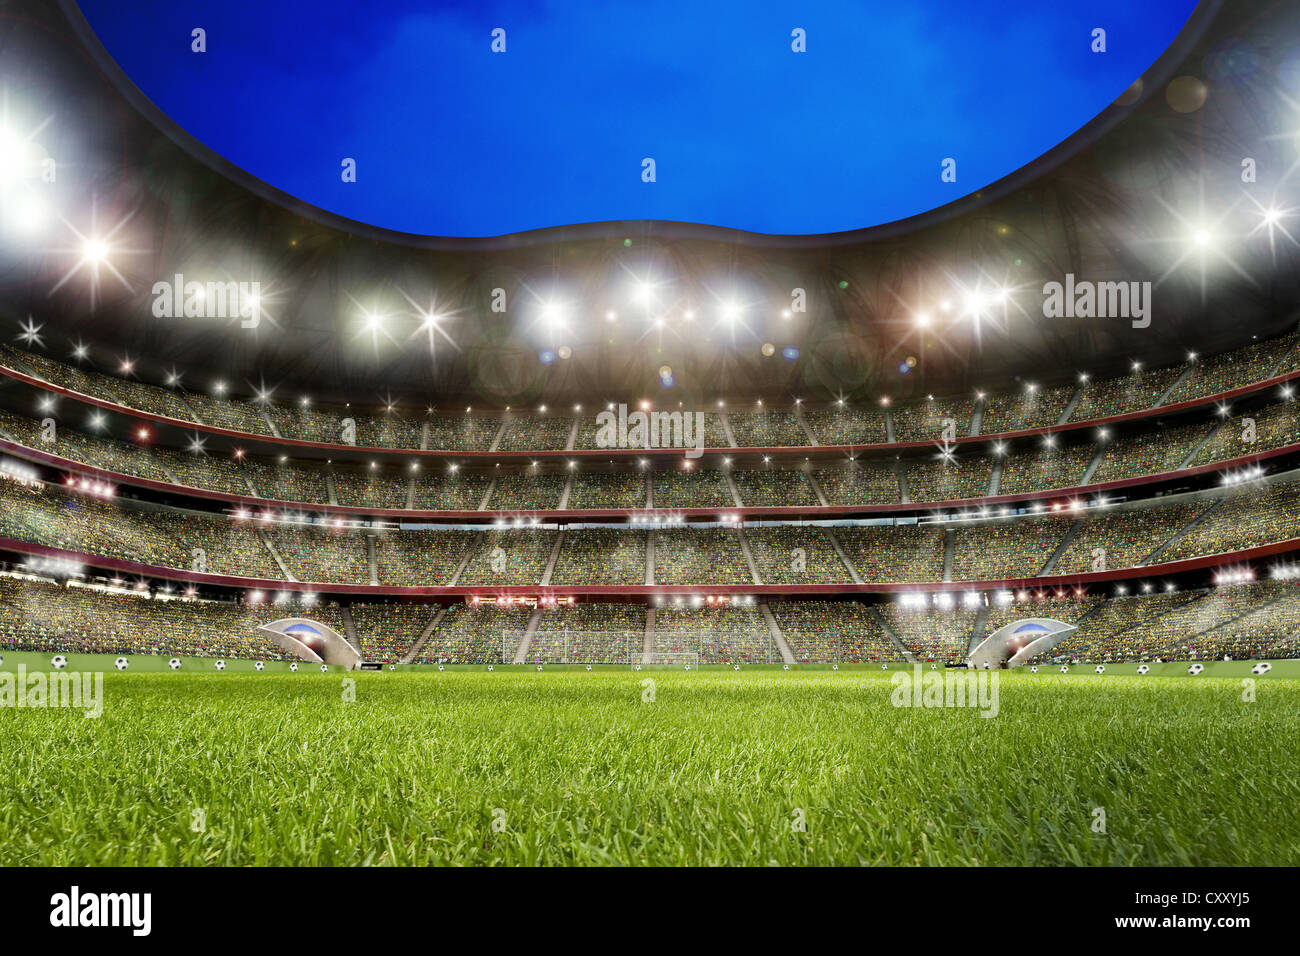 fu ball stadion rasen stockfoto bild 50994221 alamy. Black Bedroom Furniture Sets. Home Design Ideas